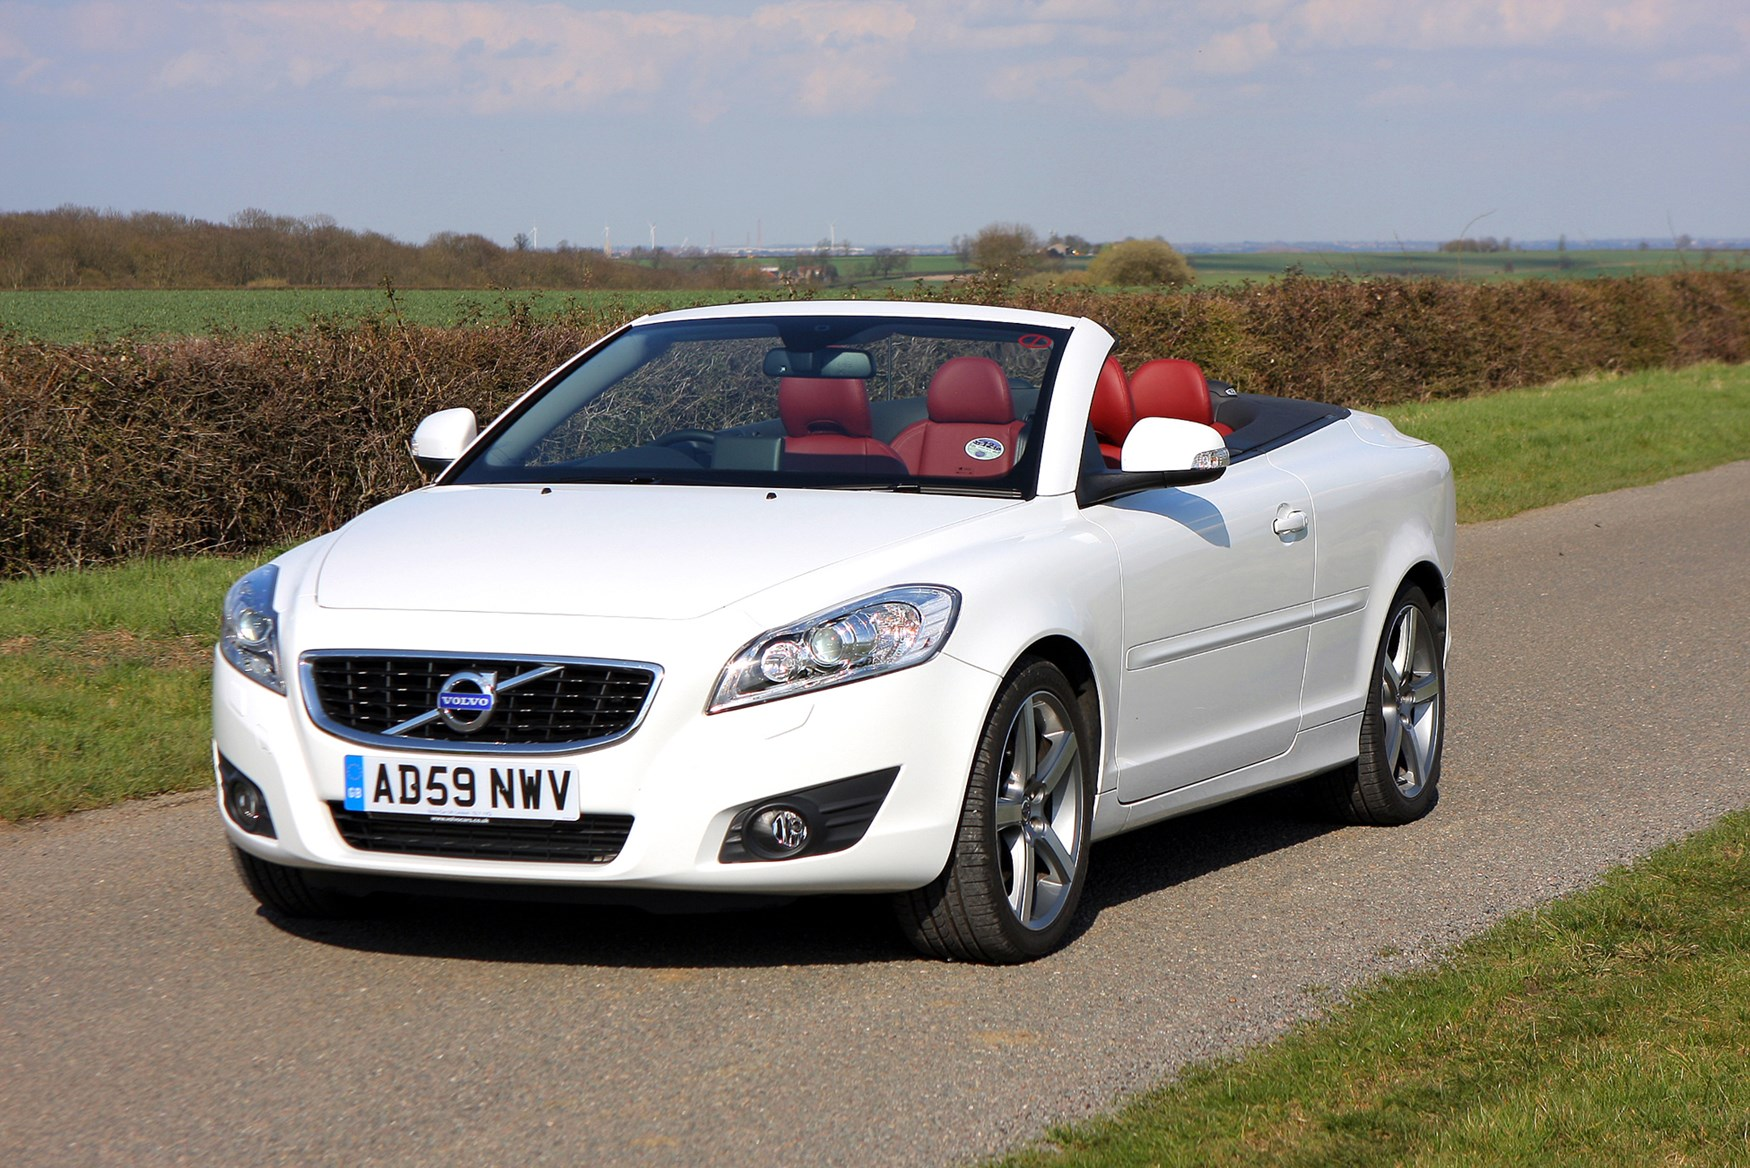 volvo c70 coup convertible review 2006 2013 parkers. Black Bedroom Furniture Sets. Home Design Ideas